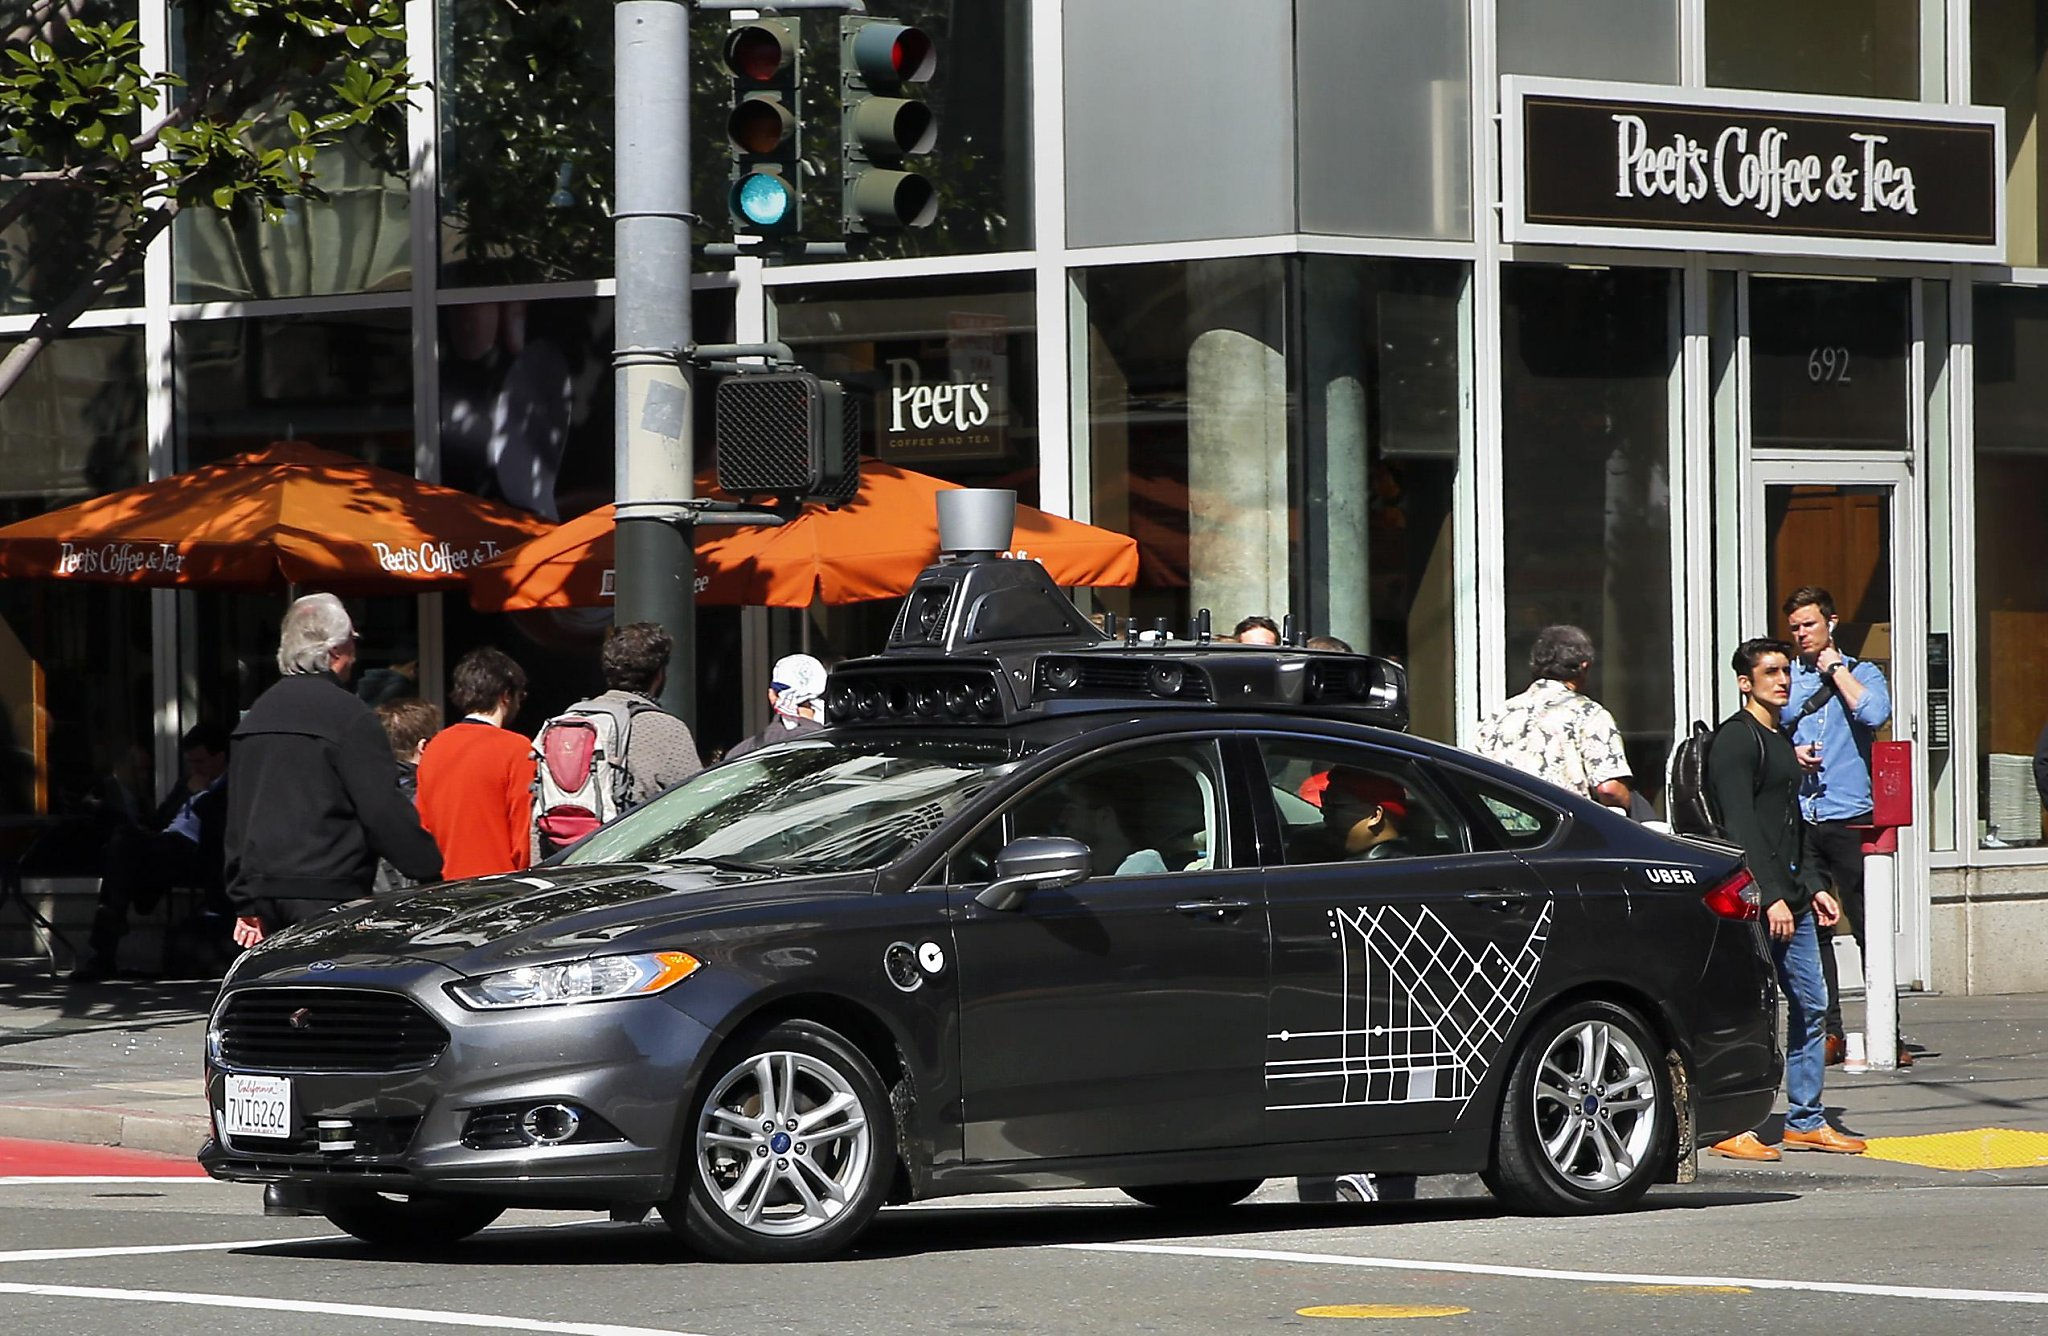 State Dmv Backs Allowing Self Driving Cars With No Human On Board Sfgate